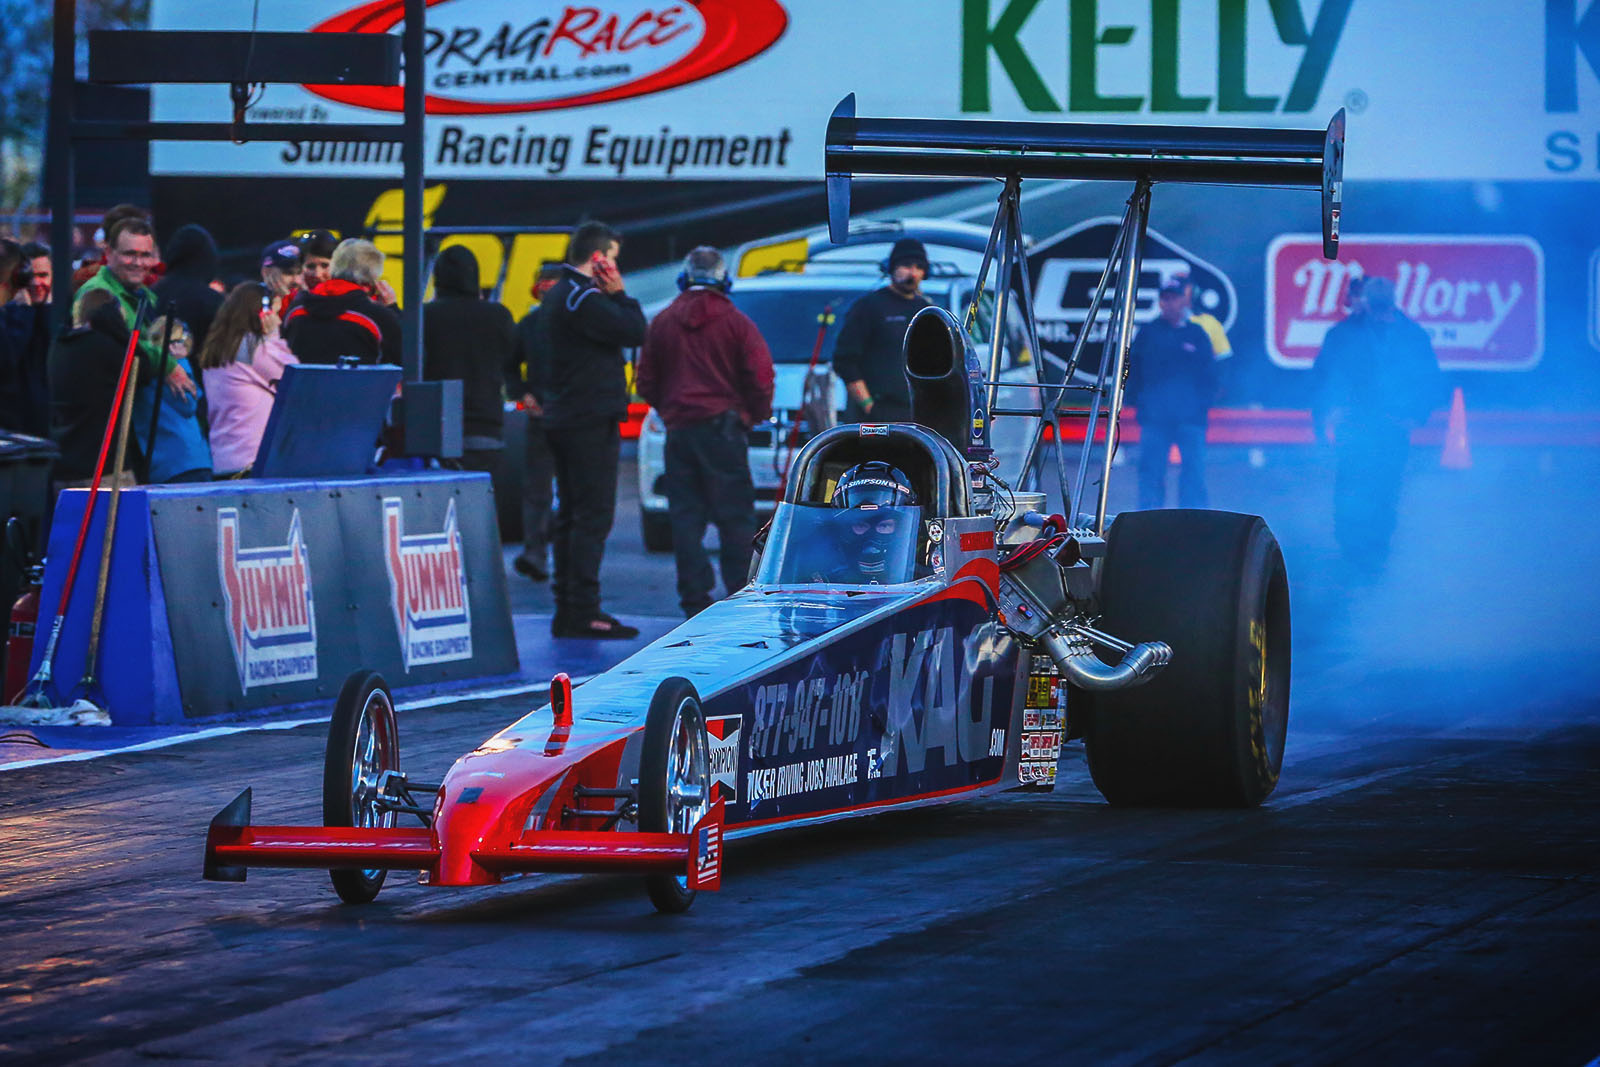 Michalek Brothers Racing driver Kyle Michalek is focused on continuing the team's successful momentum in the Lone Star State this weekend at the 28th annual O'Reilly Auto Parts NHRA SpringNationals in Houston, Texas. (Photo Credit: David Smith)